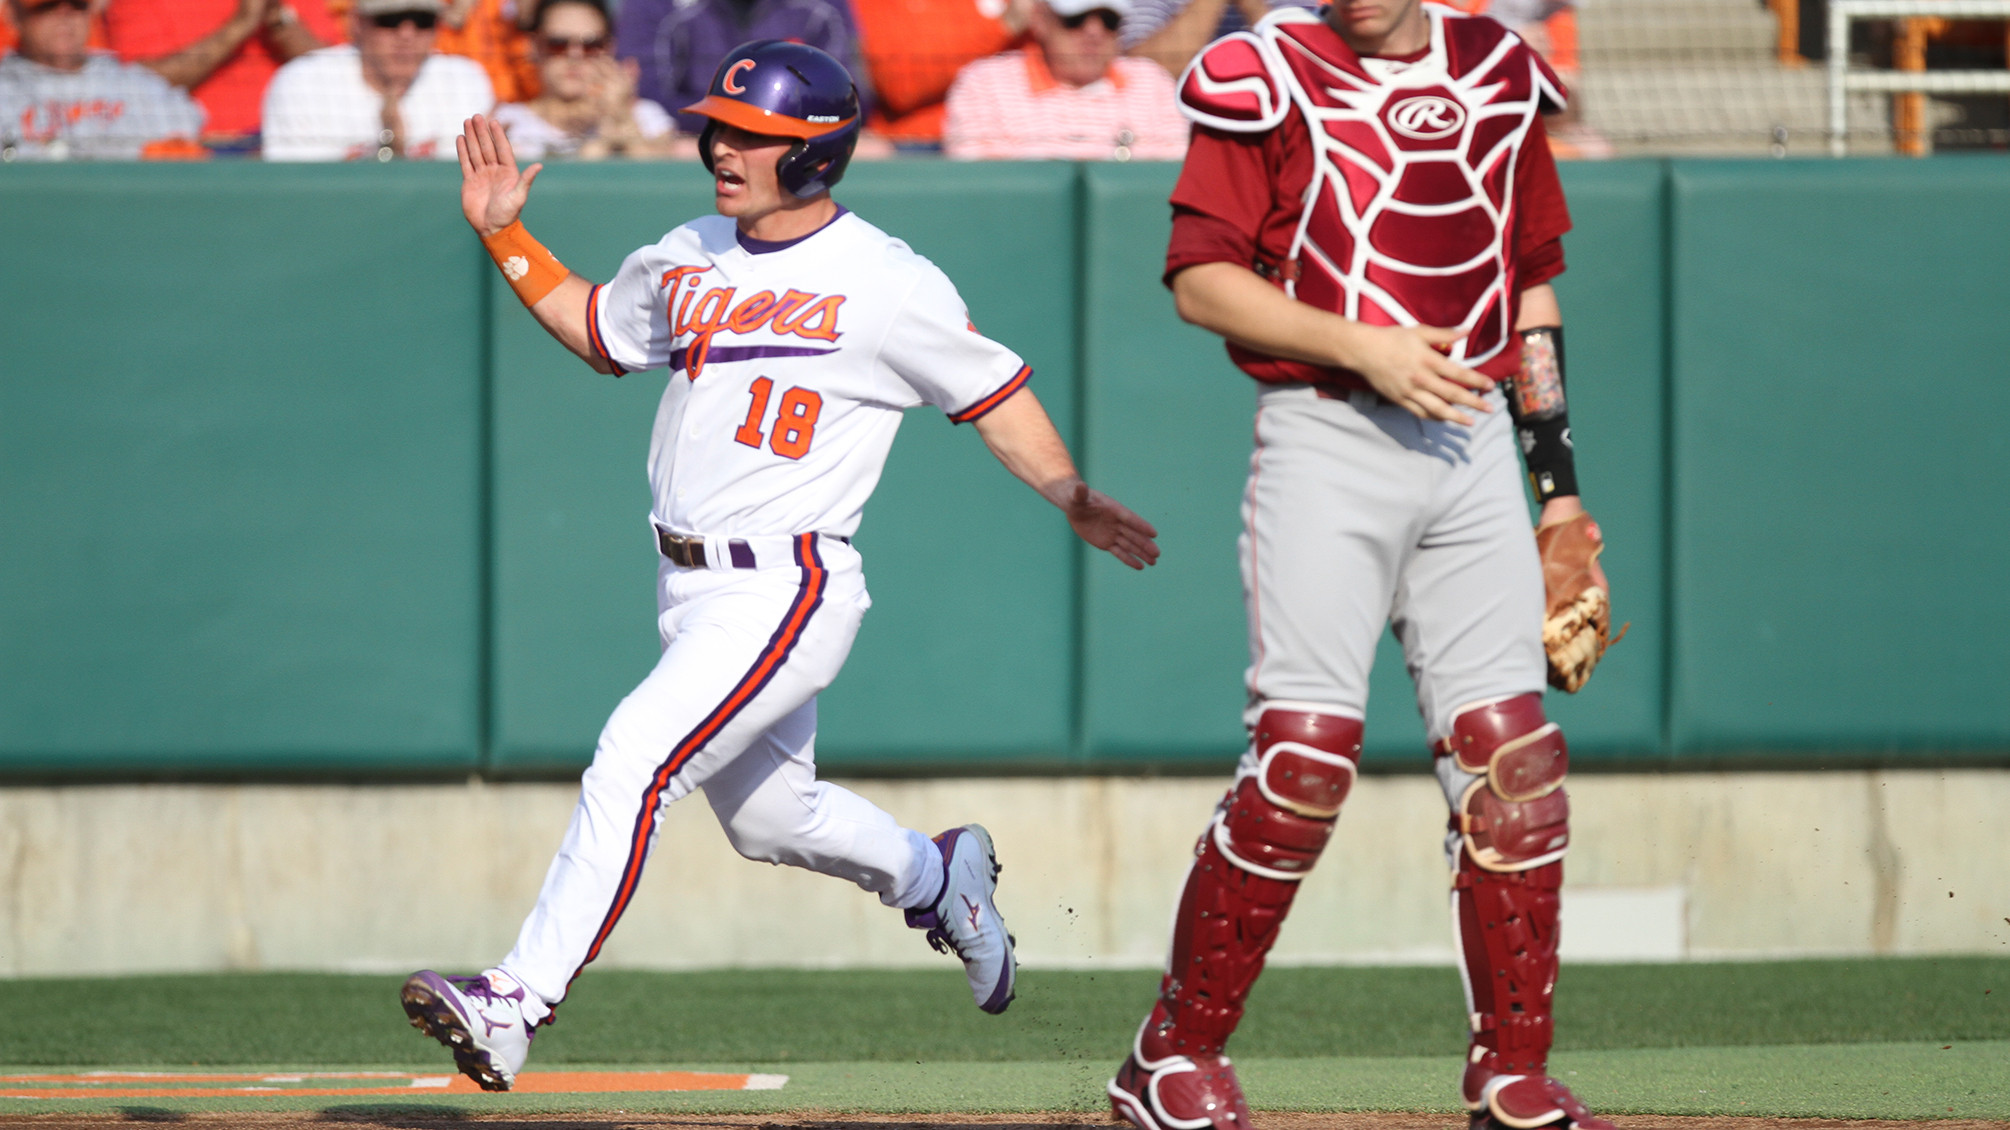 #3 Gamecocks Rally in Ninth for 5-3 Win Over #11 Tigers Sunday